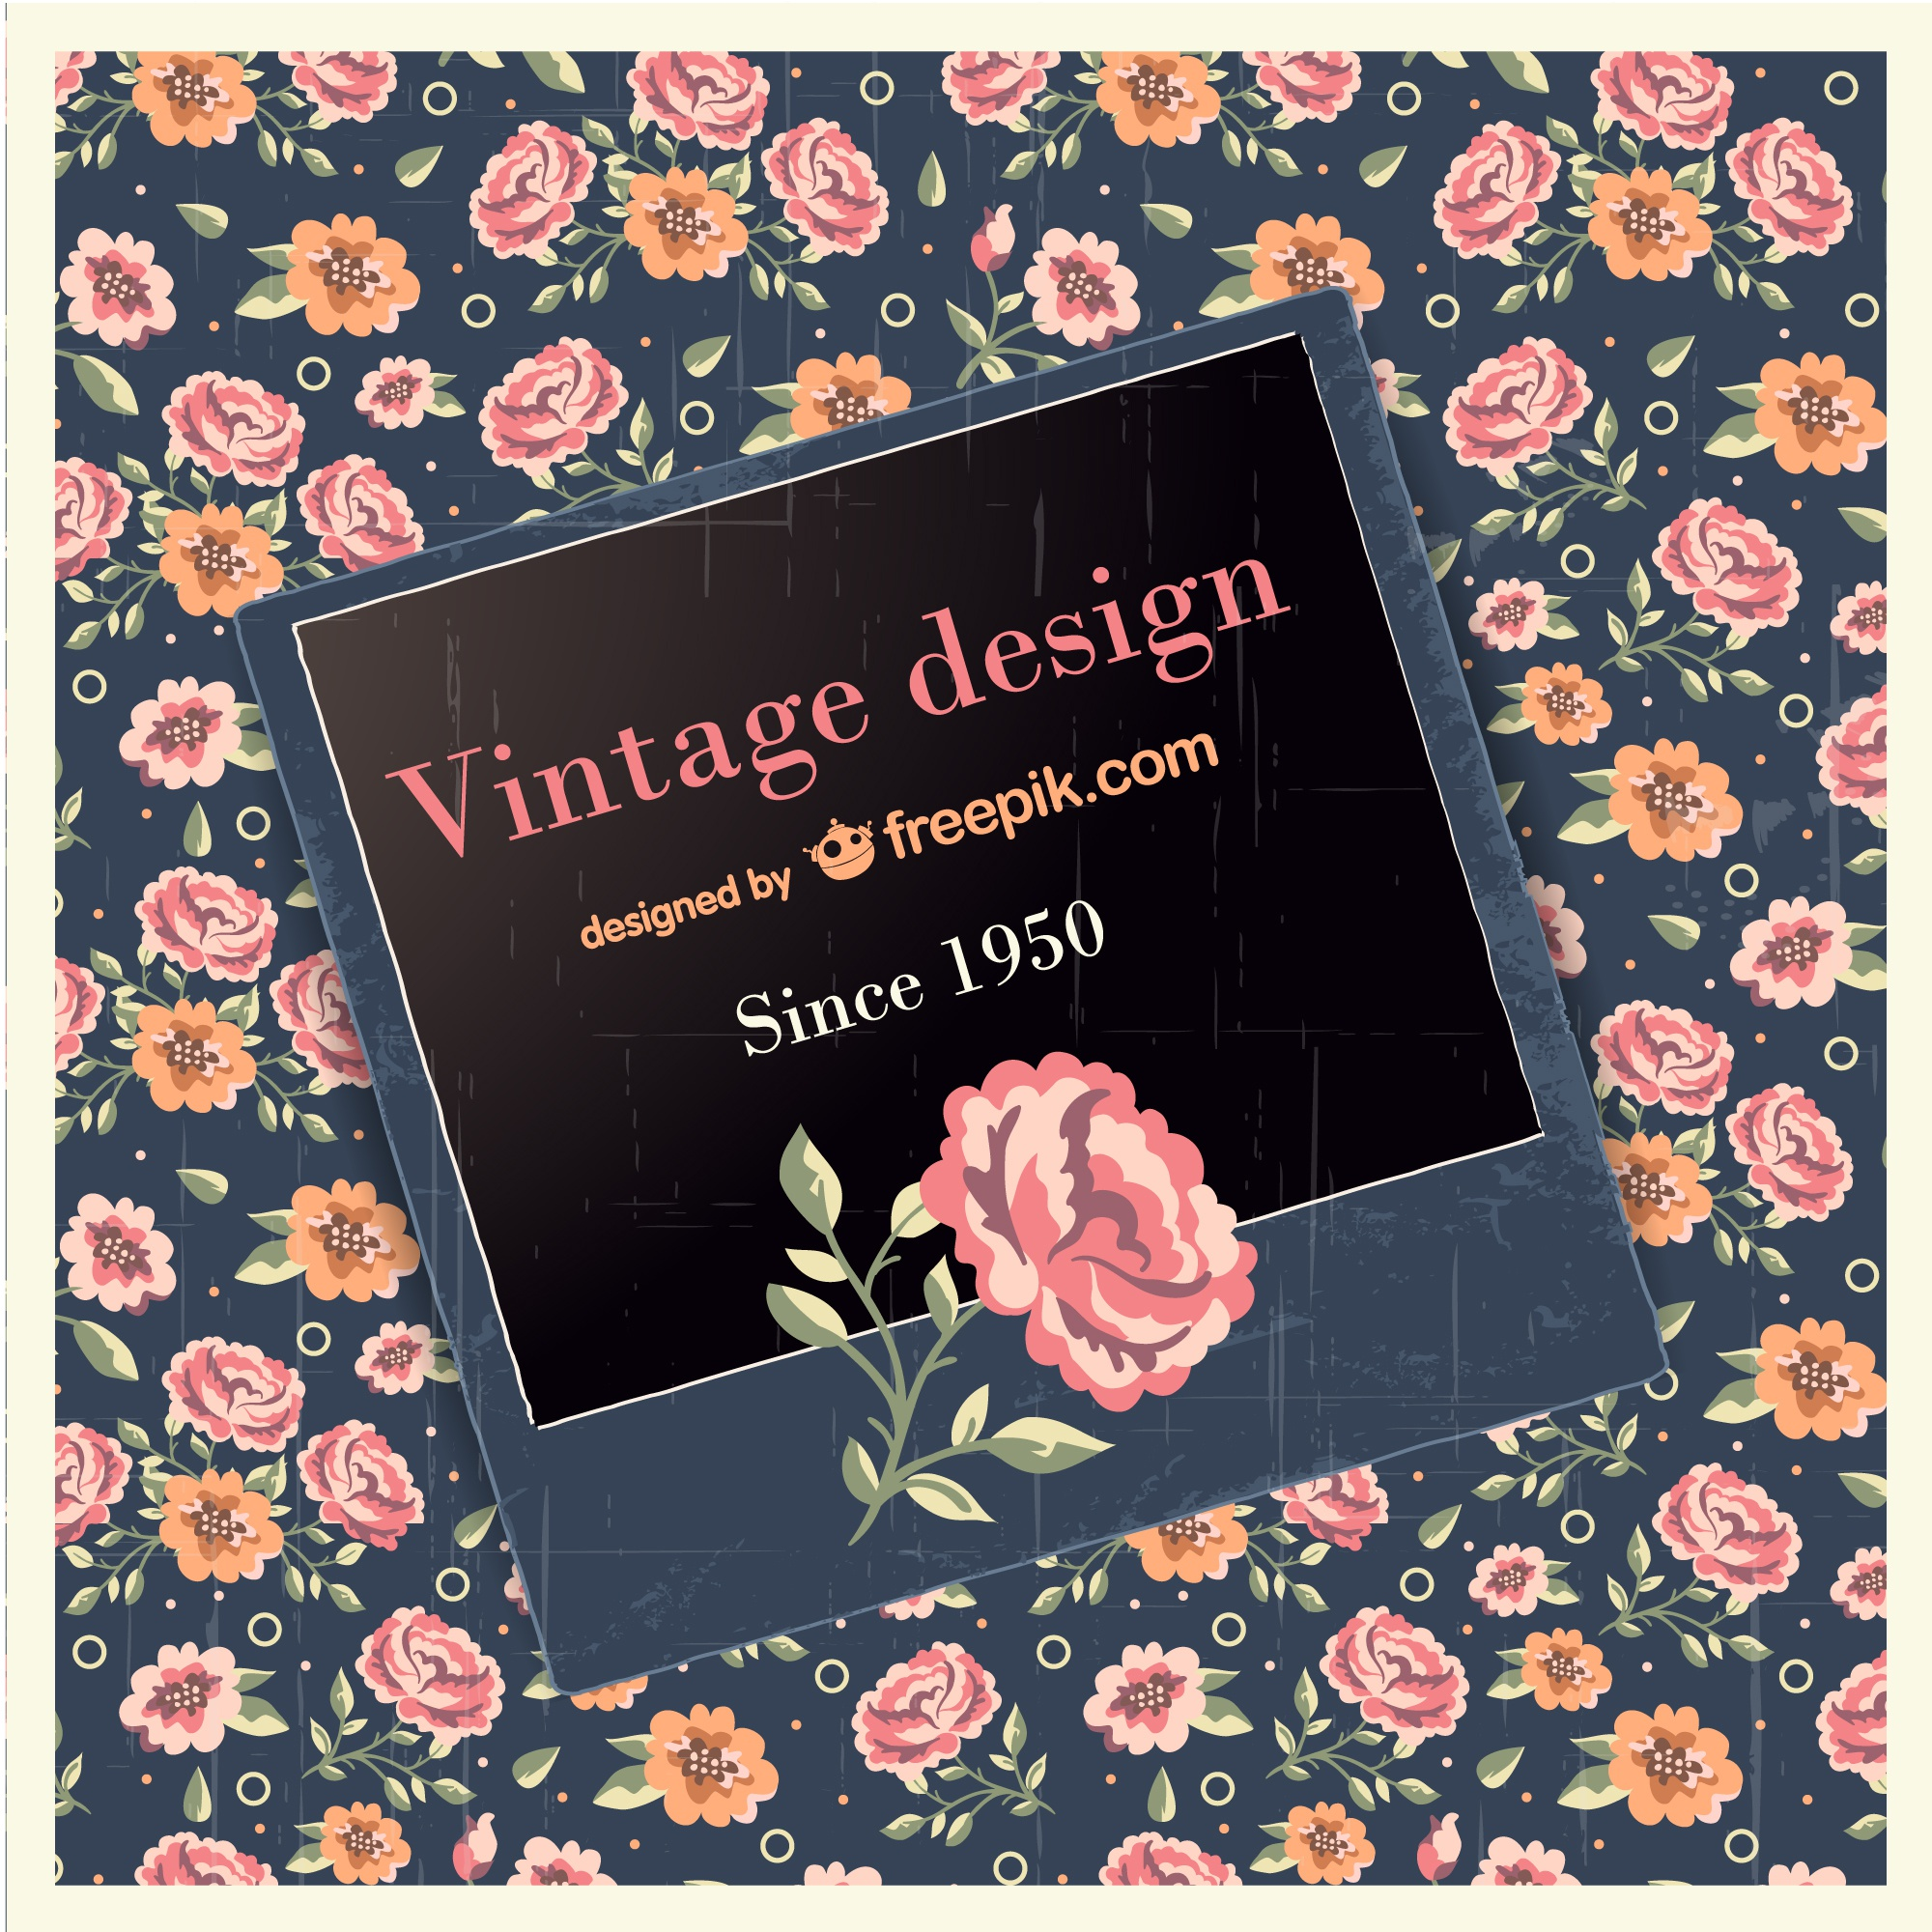 Vintage design with rose